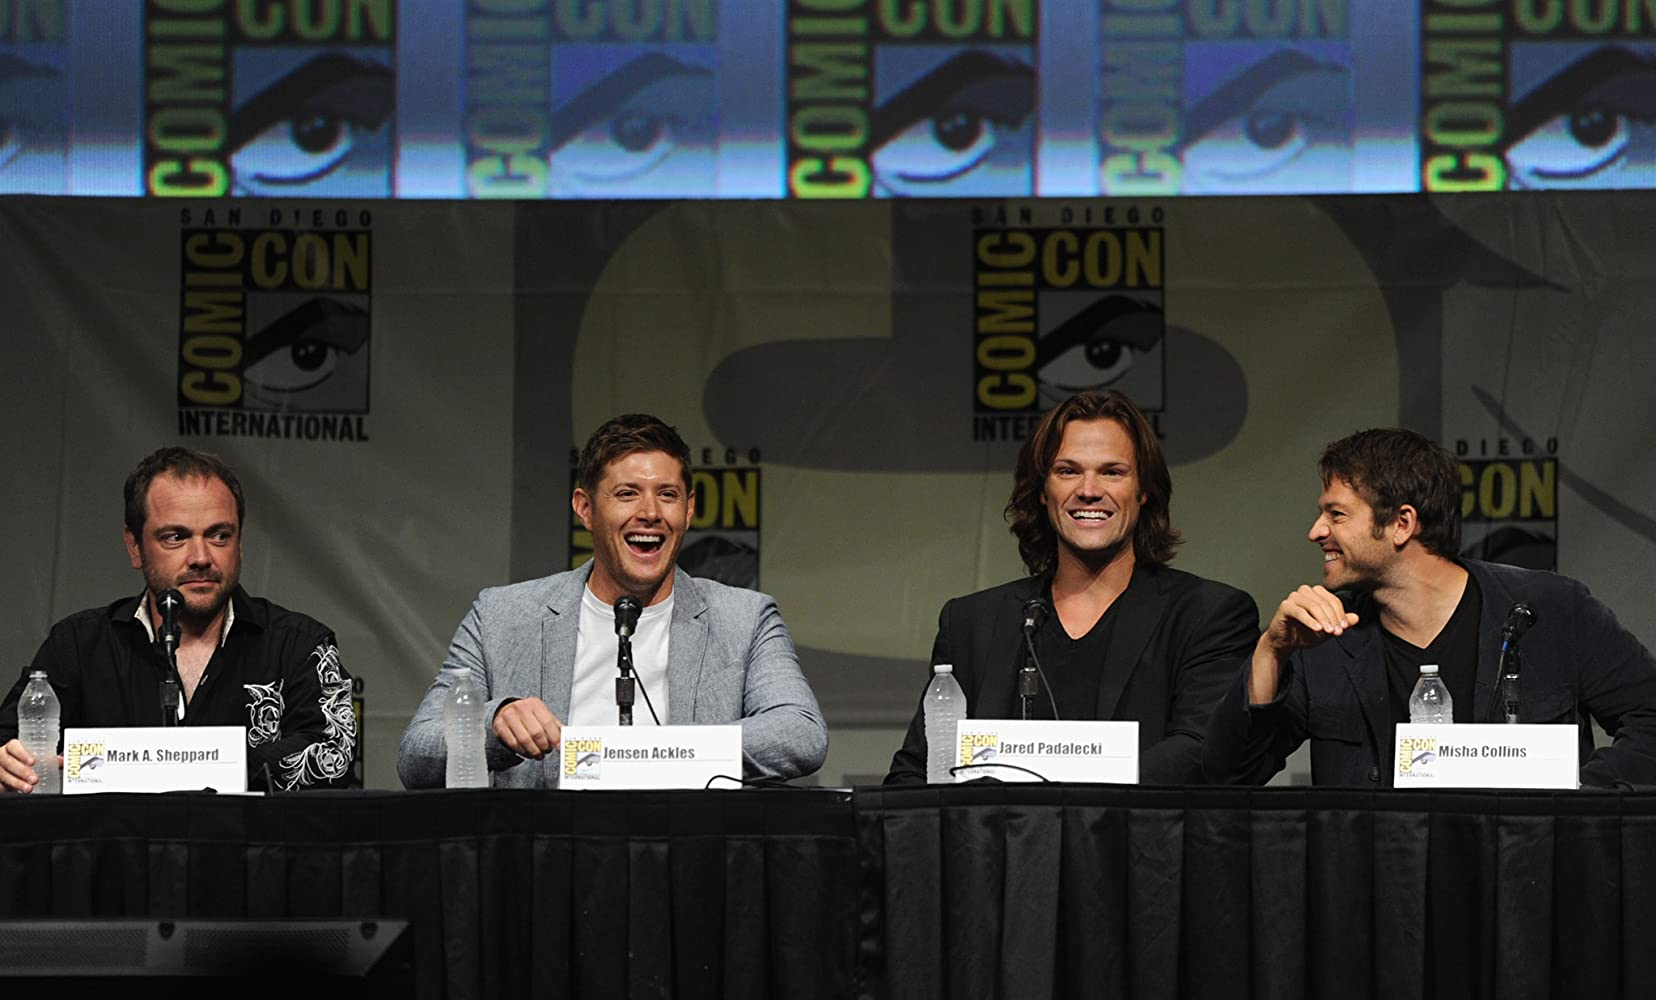 Jensen Ackles Misha Collins Jared Padalecki And Mark Sheppard At An Event For